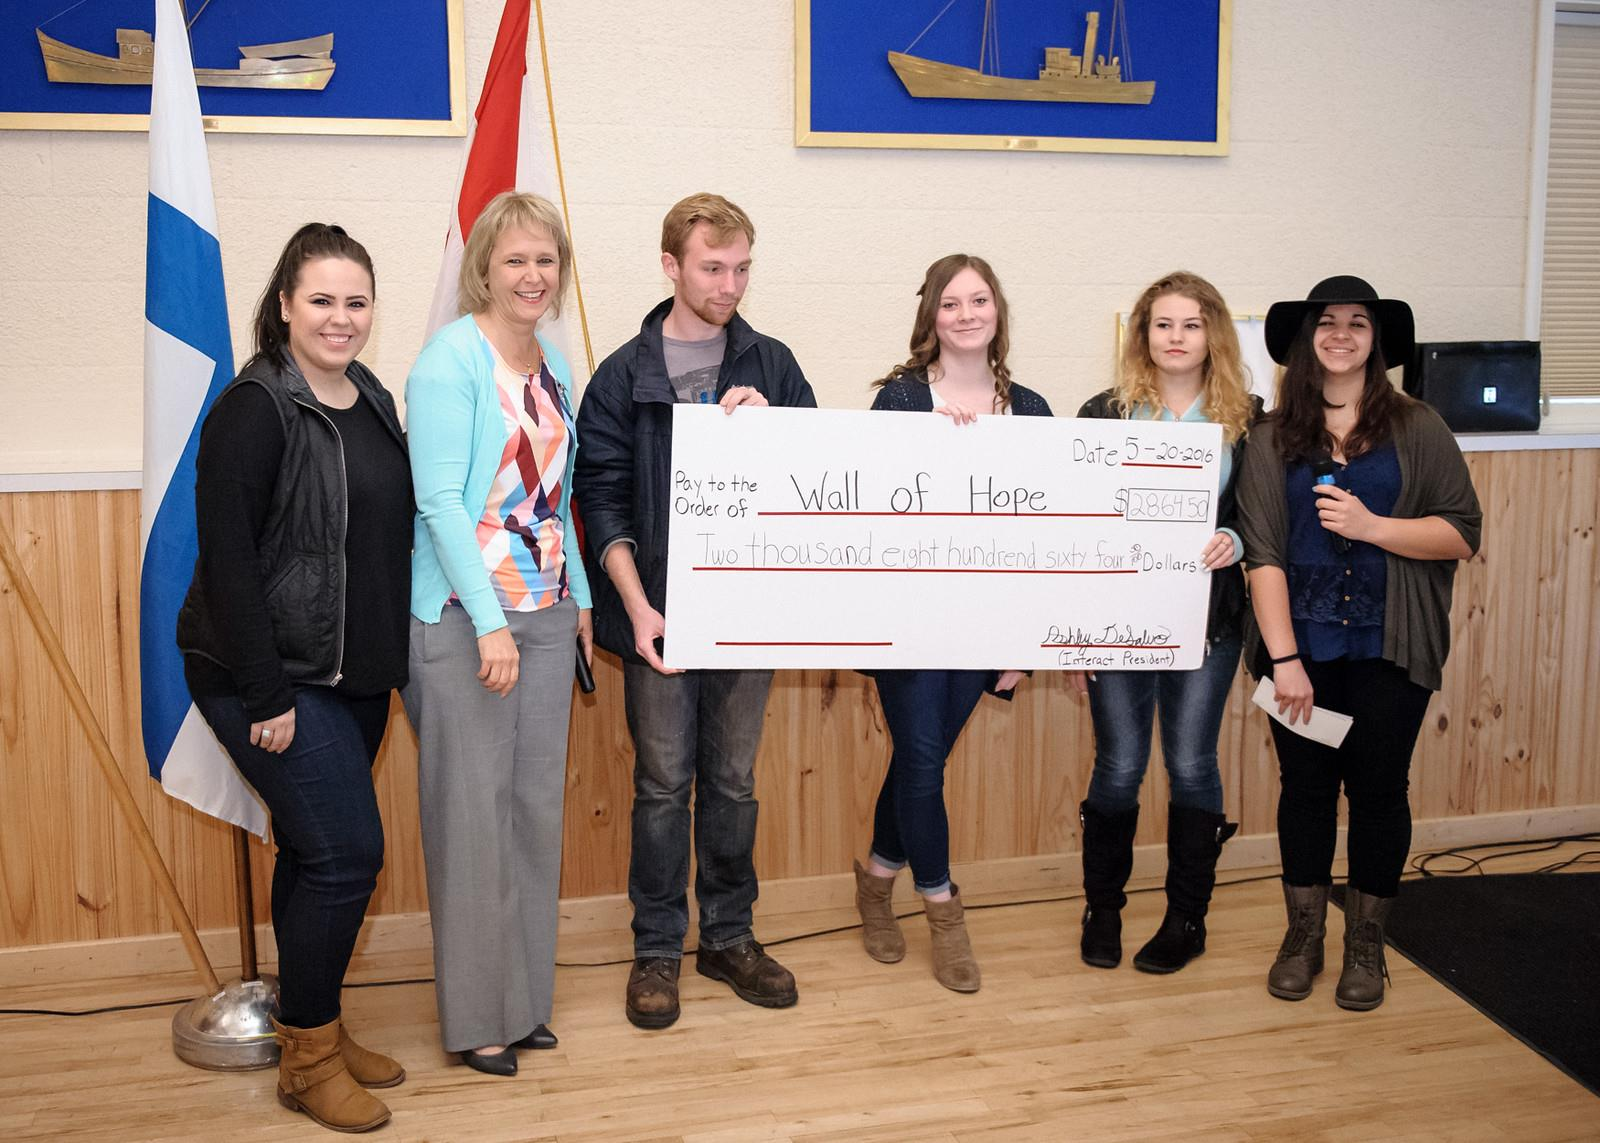 North Kitsap Interact Club donates to Dessie's House